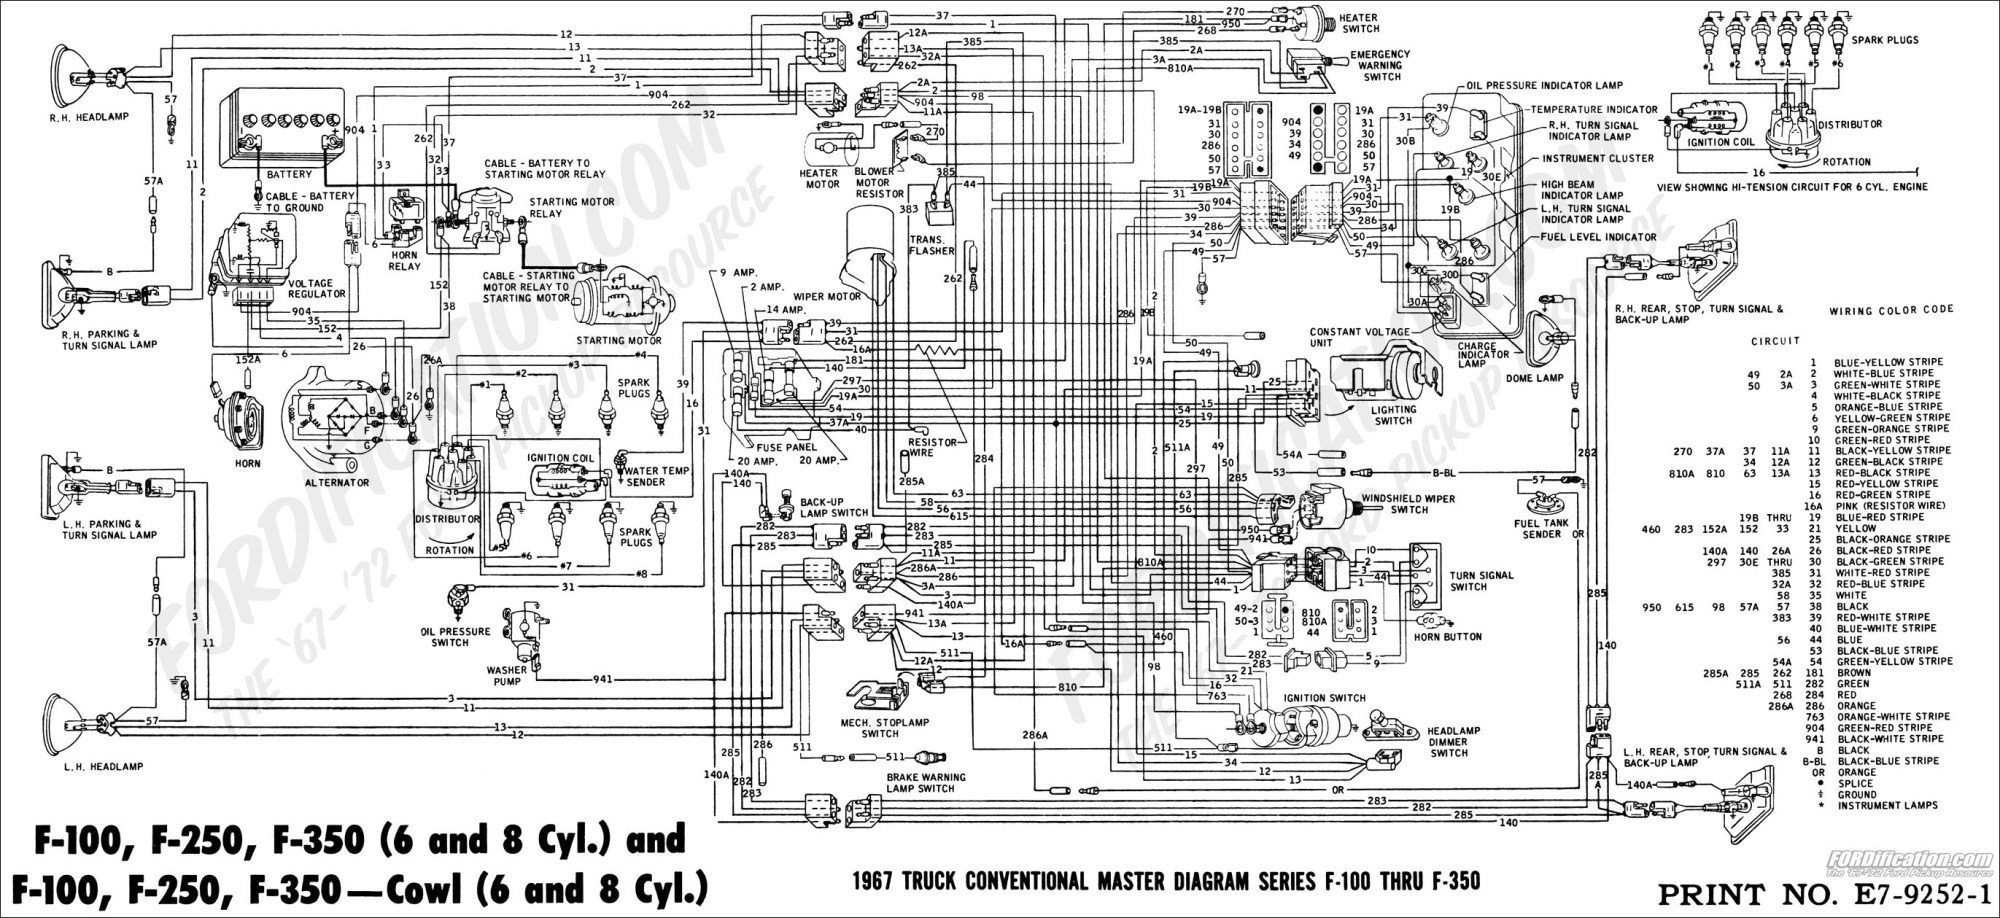 hight resolution of wiring diagram for 1988 f 250 wiring diagram blog 1988 ford mustang wiring diagram 1988 f250 wiring diagram